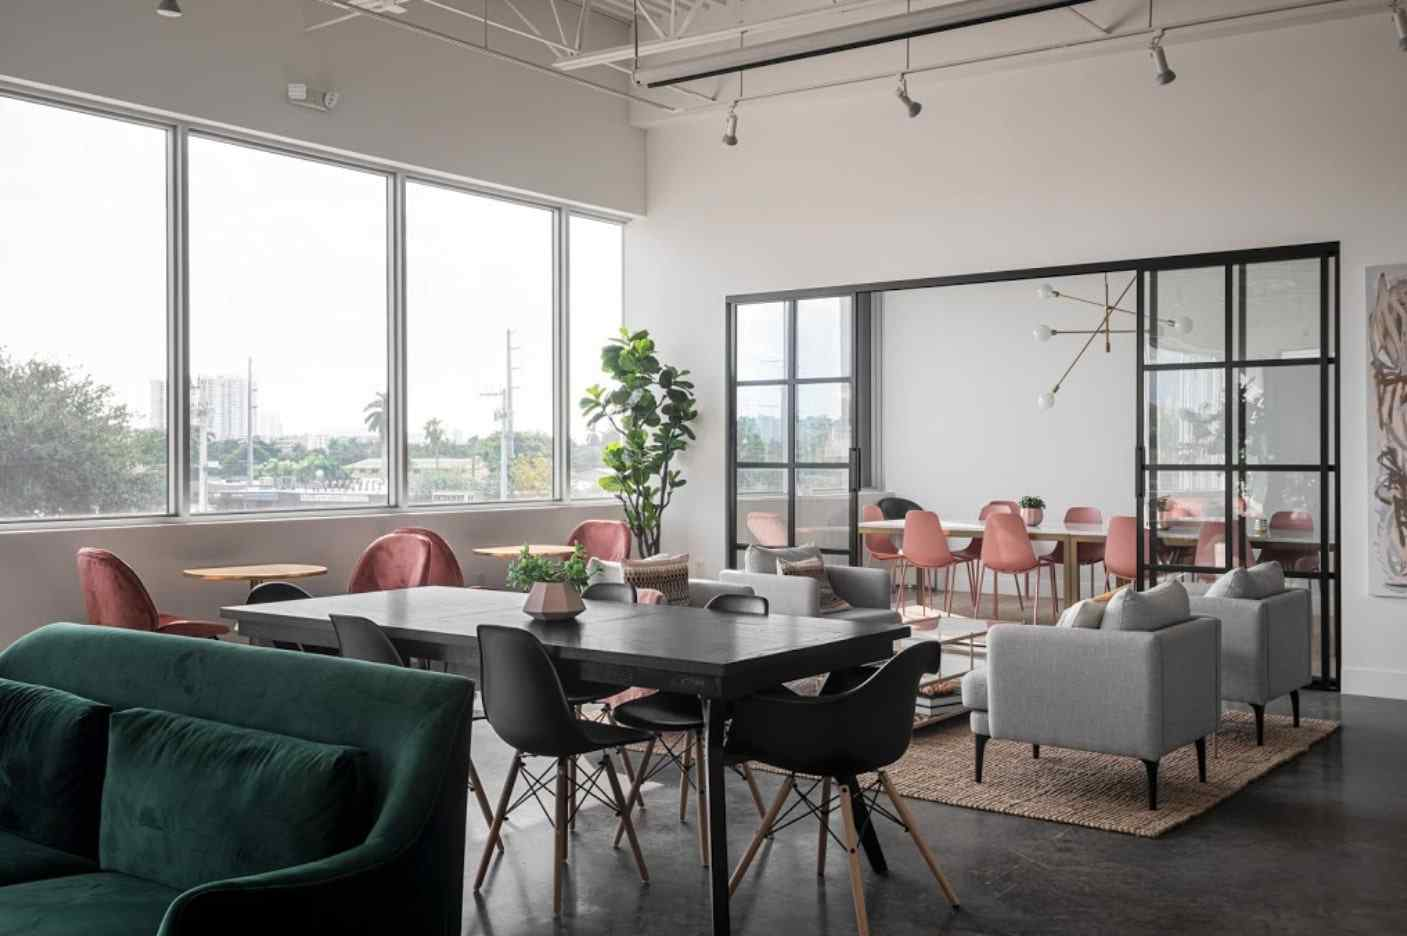 conference room with custom design bypassing sliding glass doors